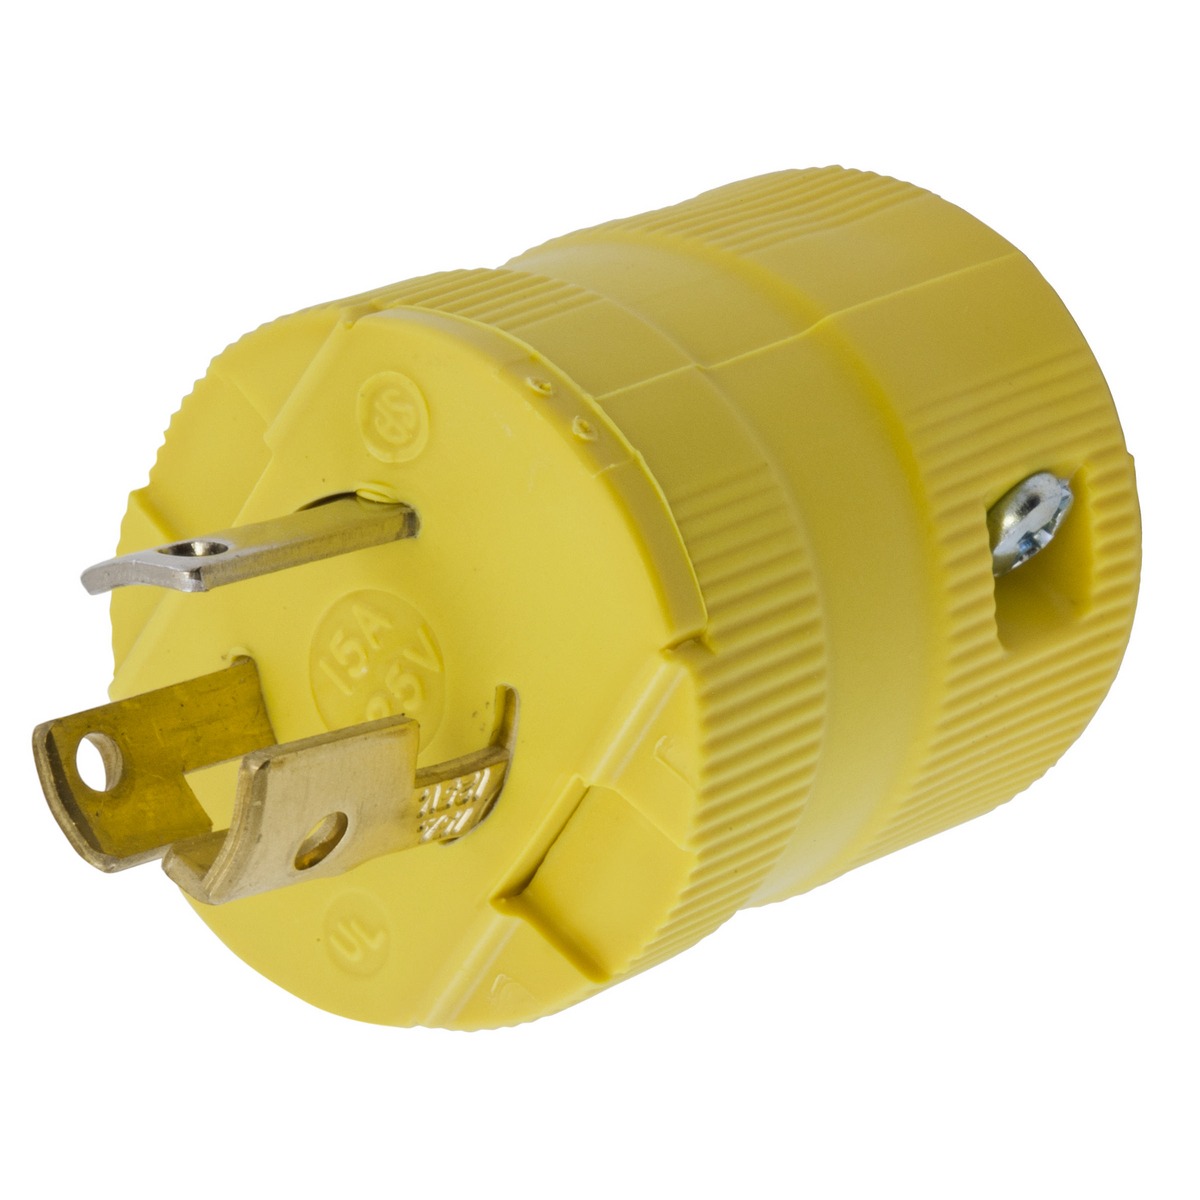 Hoffman United Electric Details Of Nema L1430p To 615 20r Plug Adapter 1 Foot 20a 250v Hubhbl4773vy Lkg Val 15a 277v L5 7p Yl Hbl4773vy